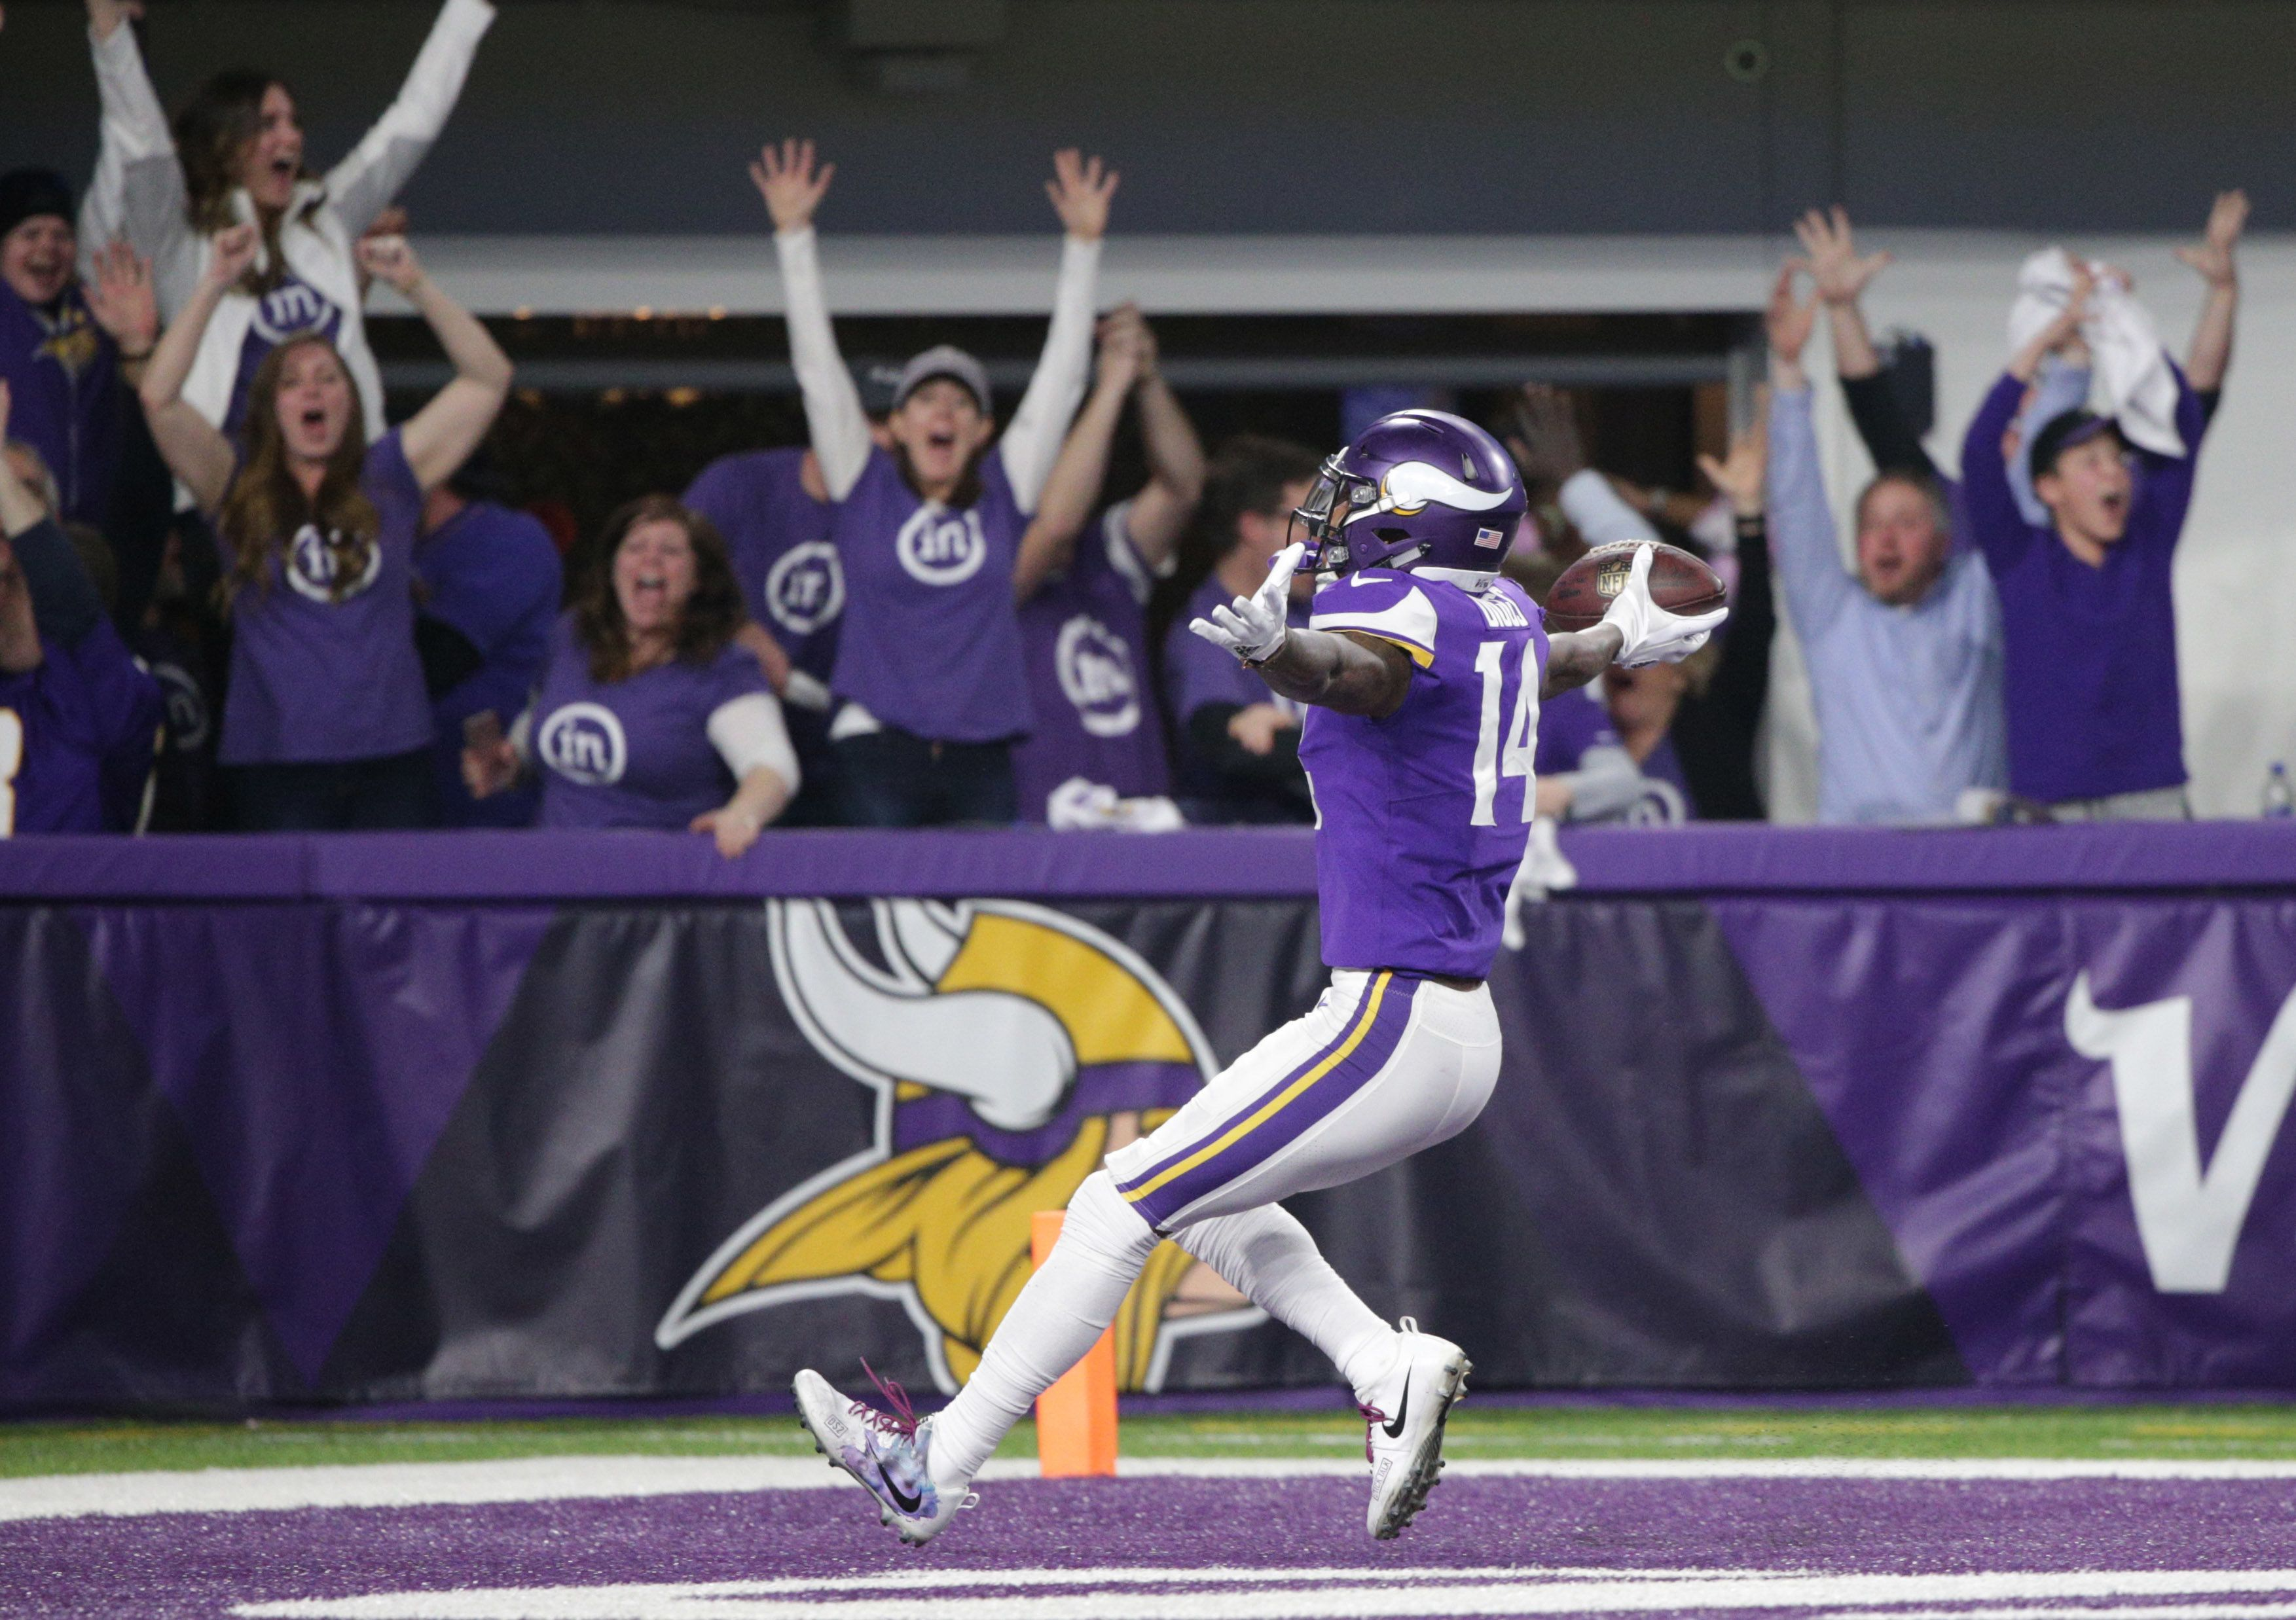 Jan 14, 2018; Minneapolis, MN, USA; Minnesota Vikings wide receiver Stefon Diggs (14) runs for the end zone and scores the winning touchdown against the New Orleans Saints in the fourth quarter of the NFC Divisional Playoff football game at U.S. Bank Stadium. Mandatory Credit: Brad Rempel-USA TODAY Sports